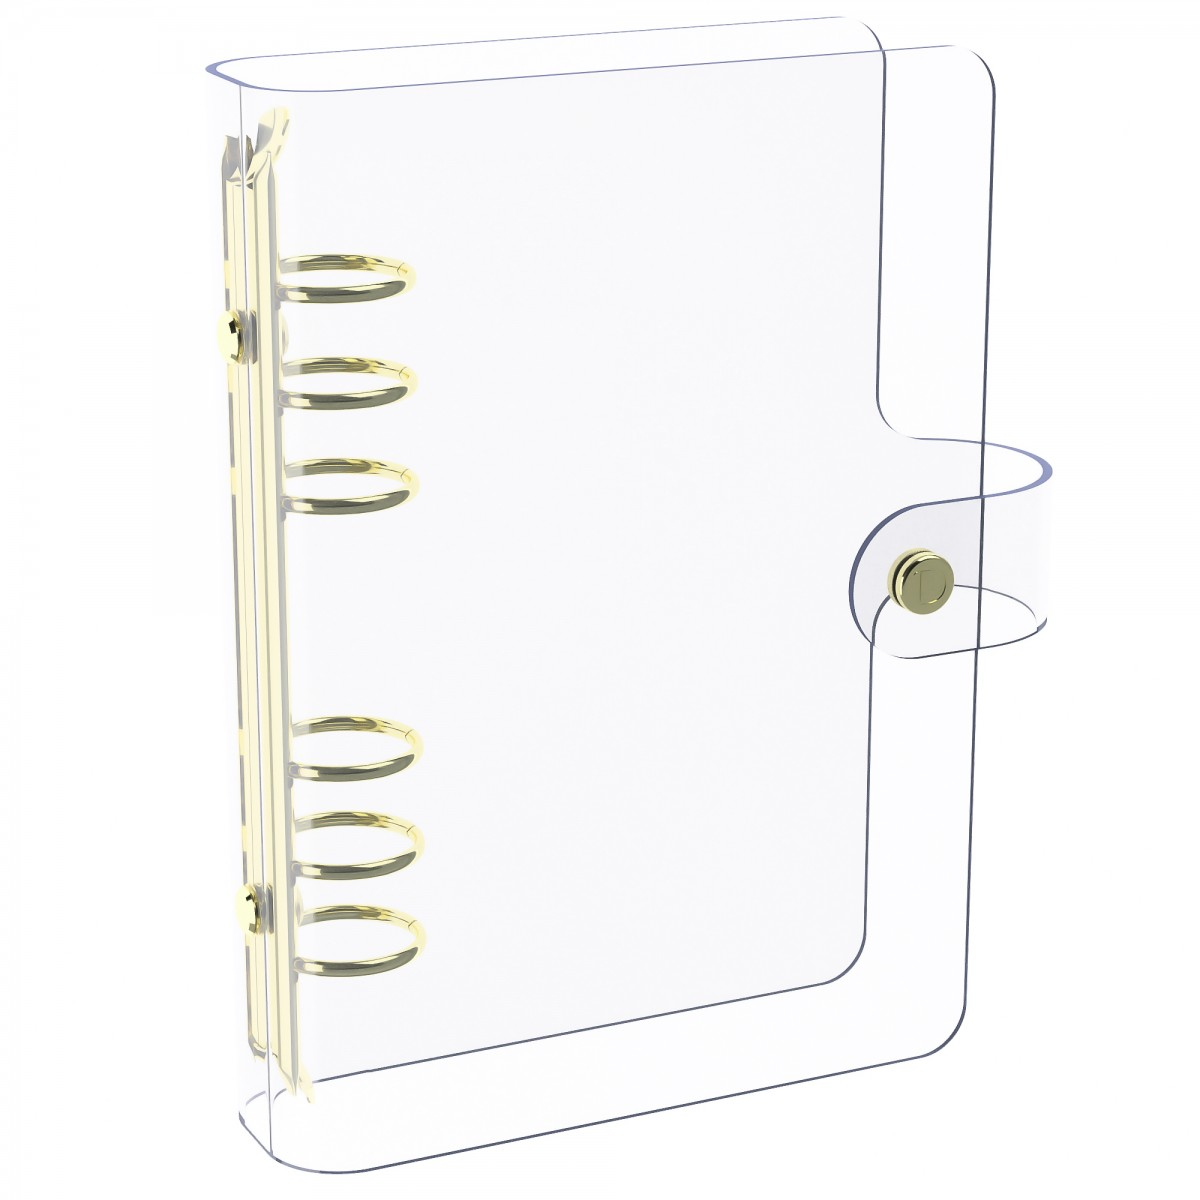 DISCAGENDA CLARITY CLEAR SEE THROUGH PVC PLANNER COVER - RINGBOUND, PERSONAL SIZE, GOLD